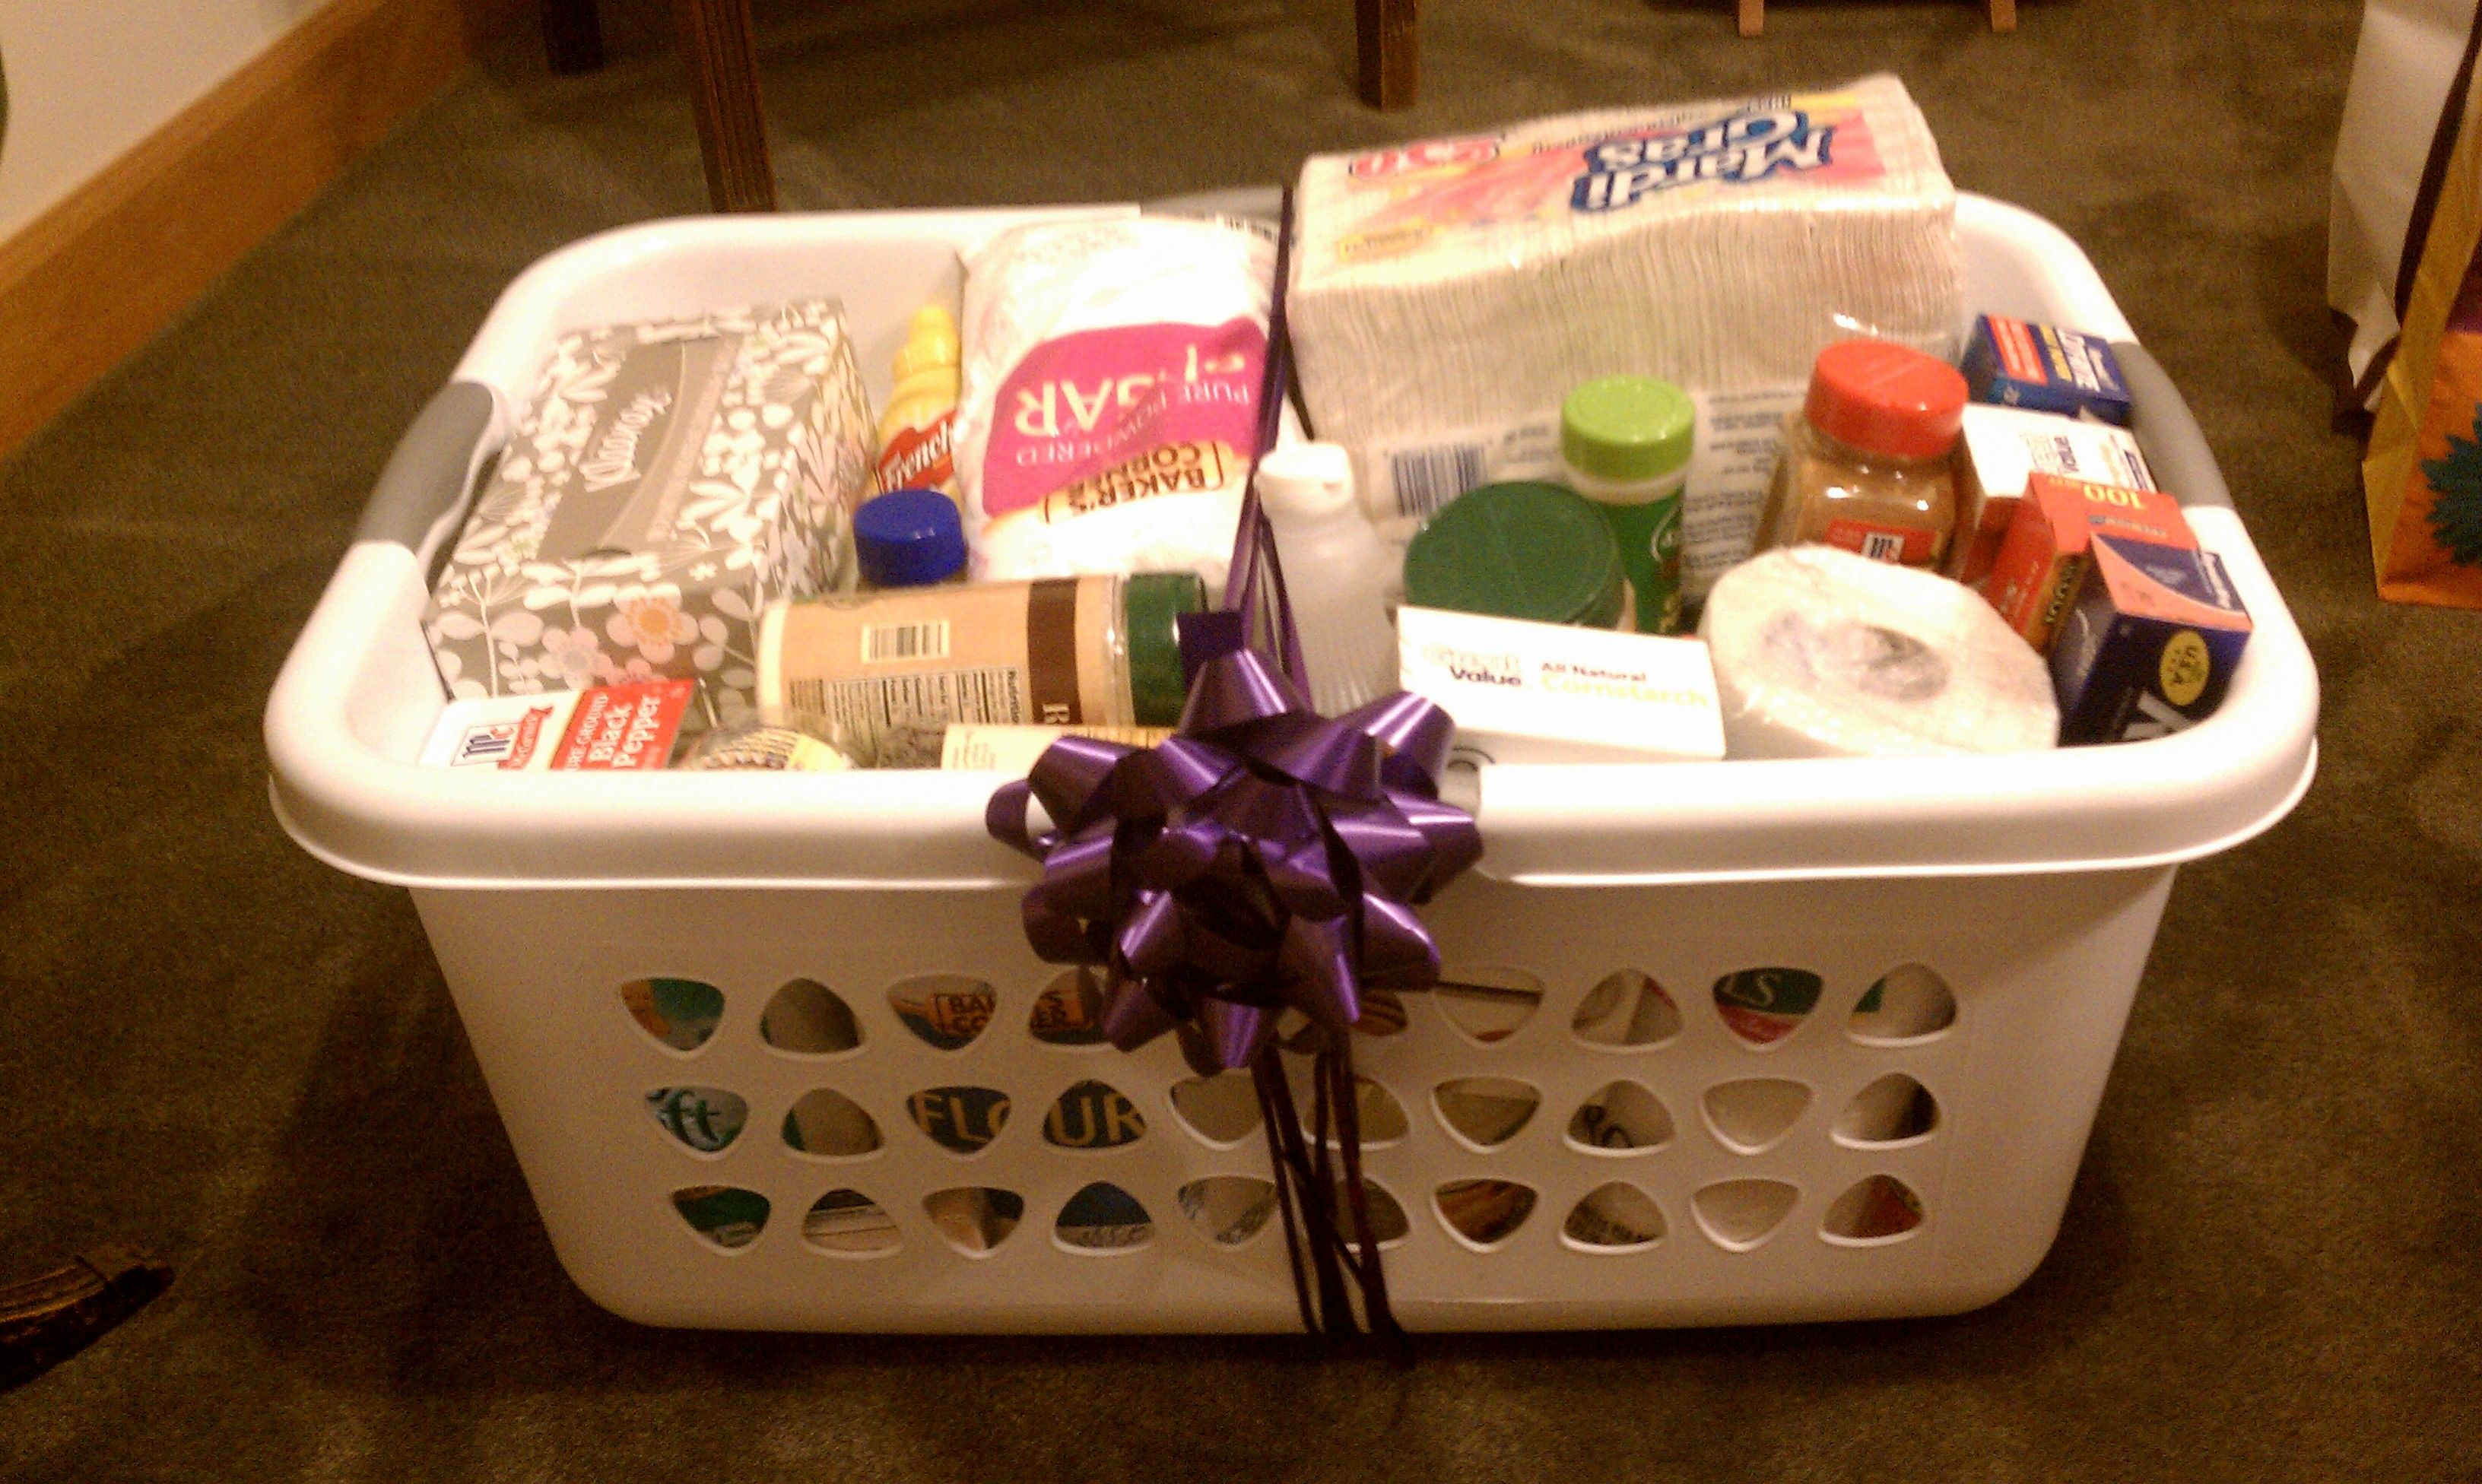 Pin By Rebecca Frazier On Gift Ideas Gifts Crafty Gifts Jar Gifts